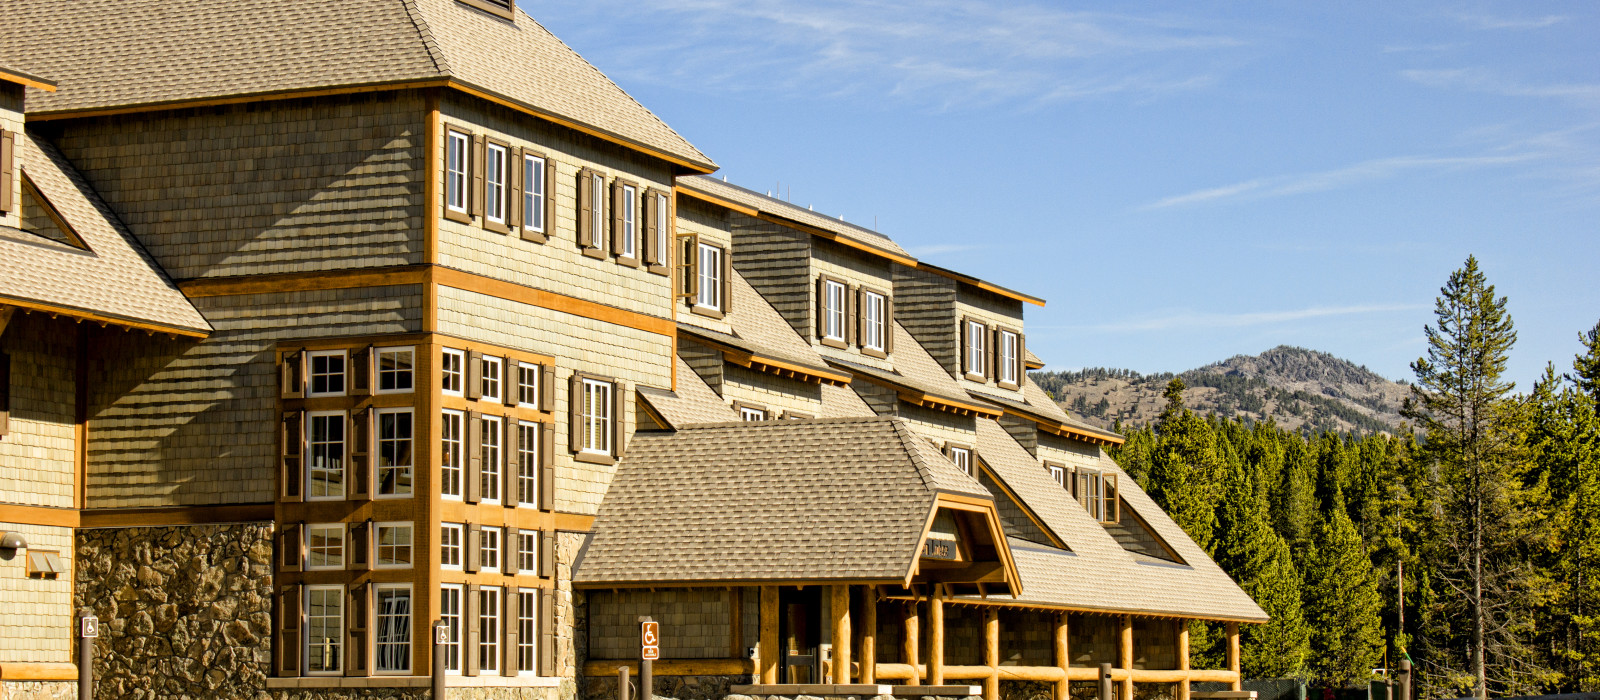 Hotel Canyon Lodge and Cabins USA